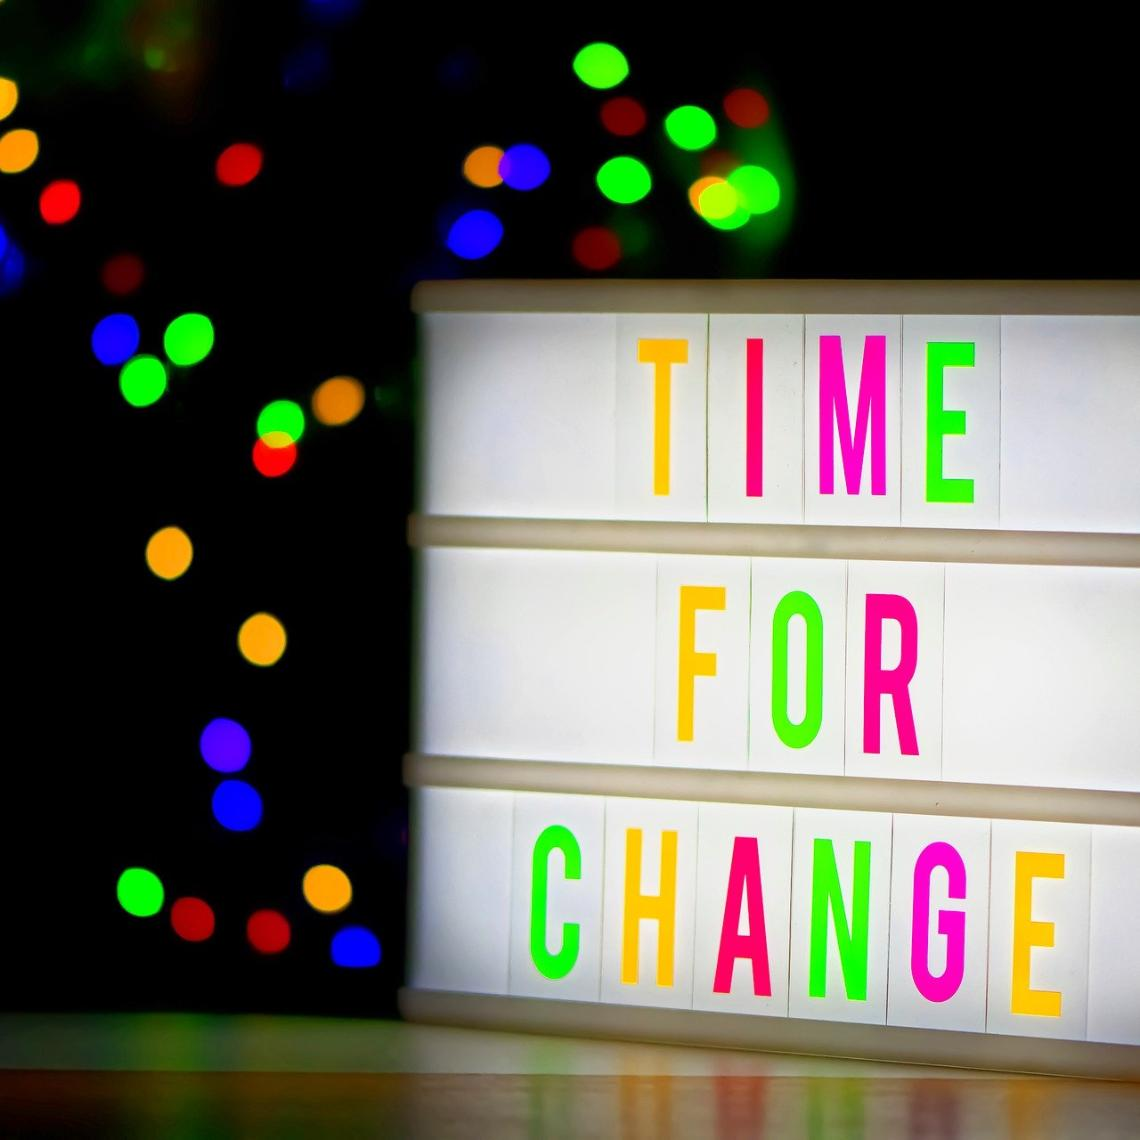 time-for-change1-Pixabay_DG (c) Pixabay